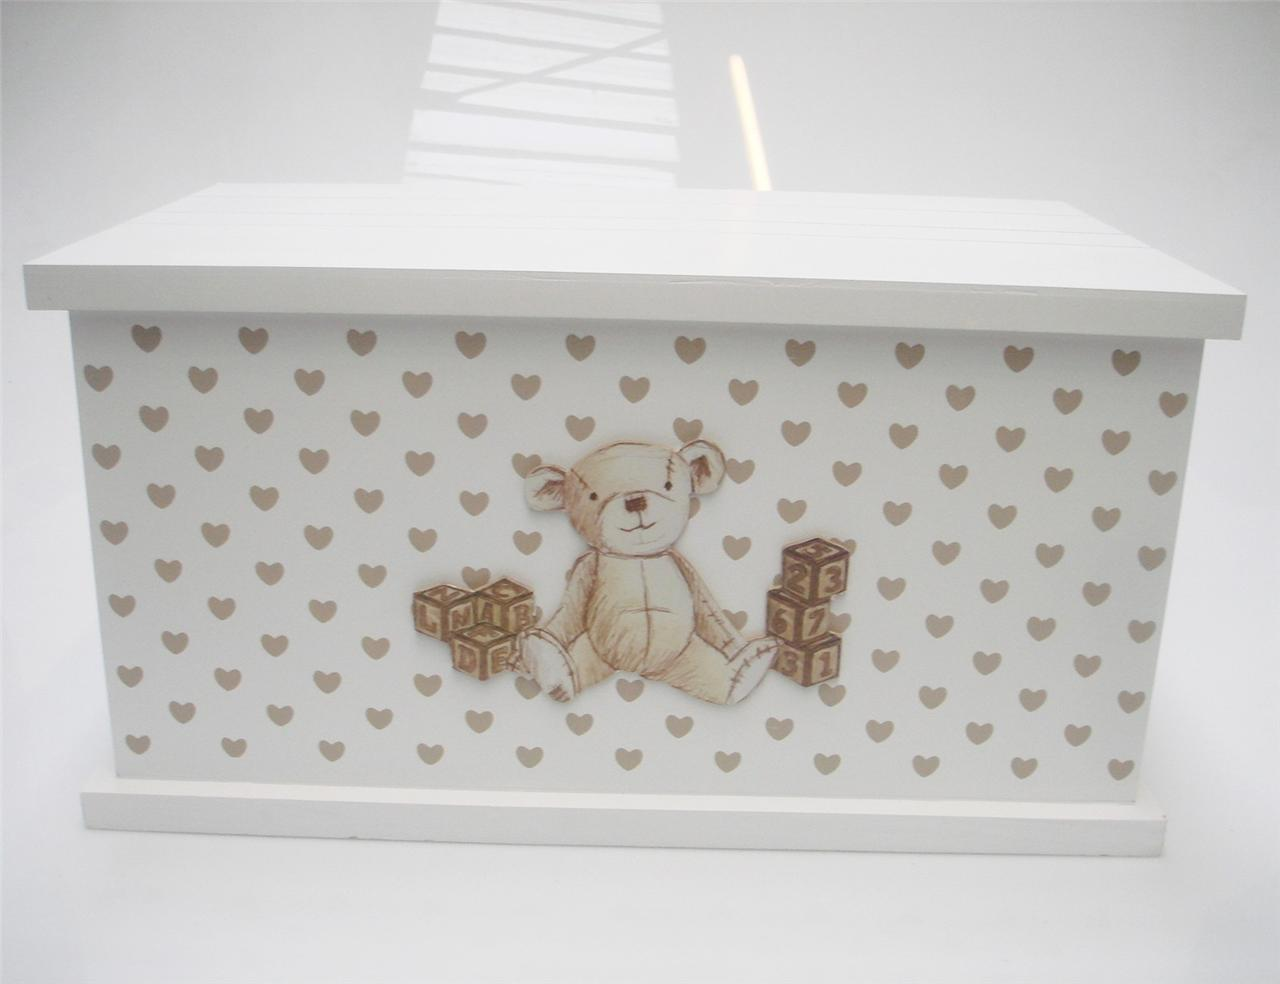 Baby Bedroom In A Box Special: TEDDY BEAR WOODEN HOME BABY NURSERY KIDS BEDROOM TOY BOX